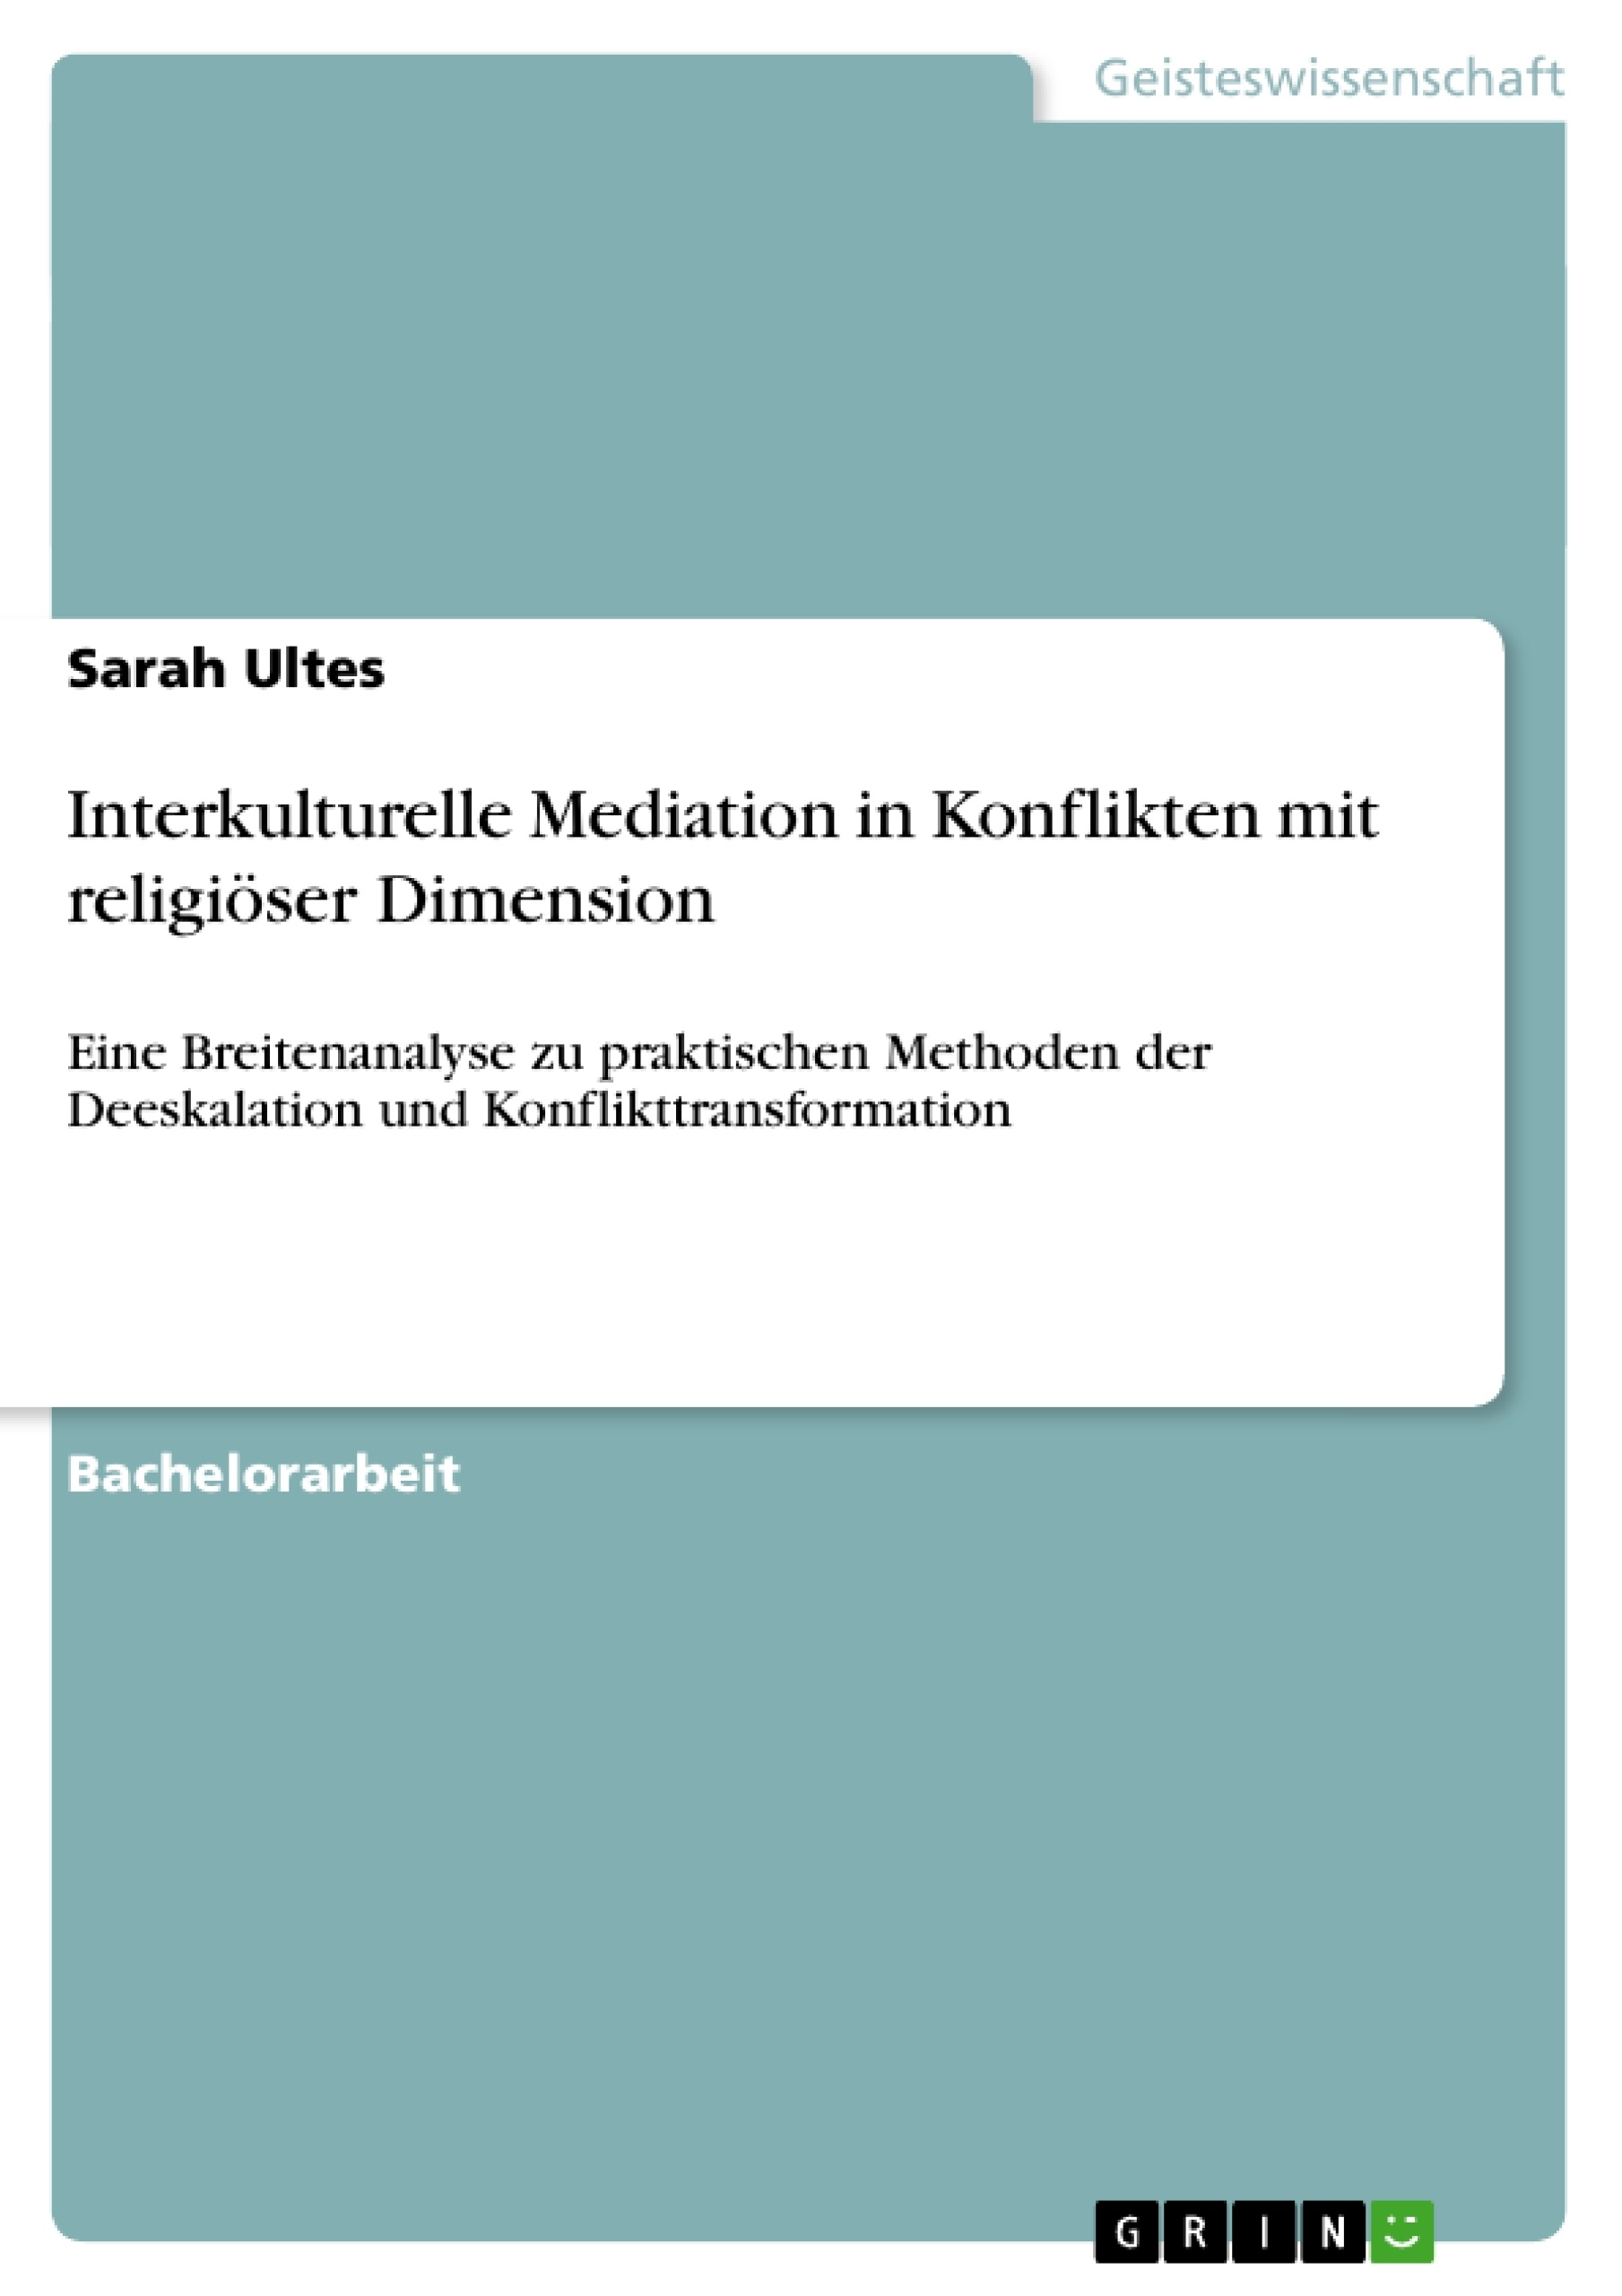 Titel: Interkulturelle Mediation in Konflikten mit religiöser Dimension